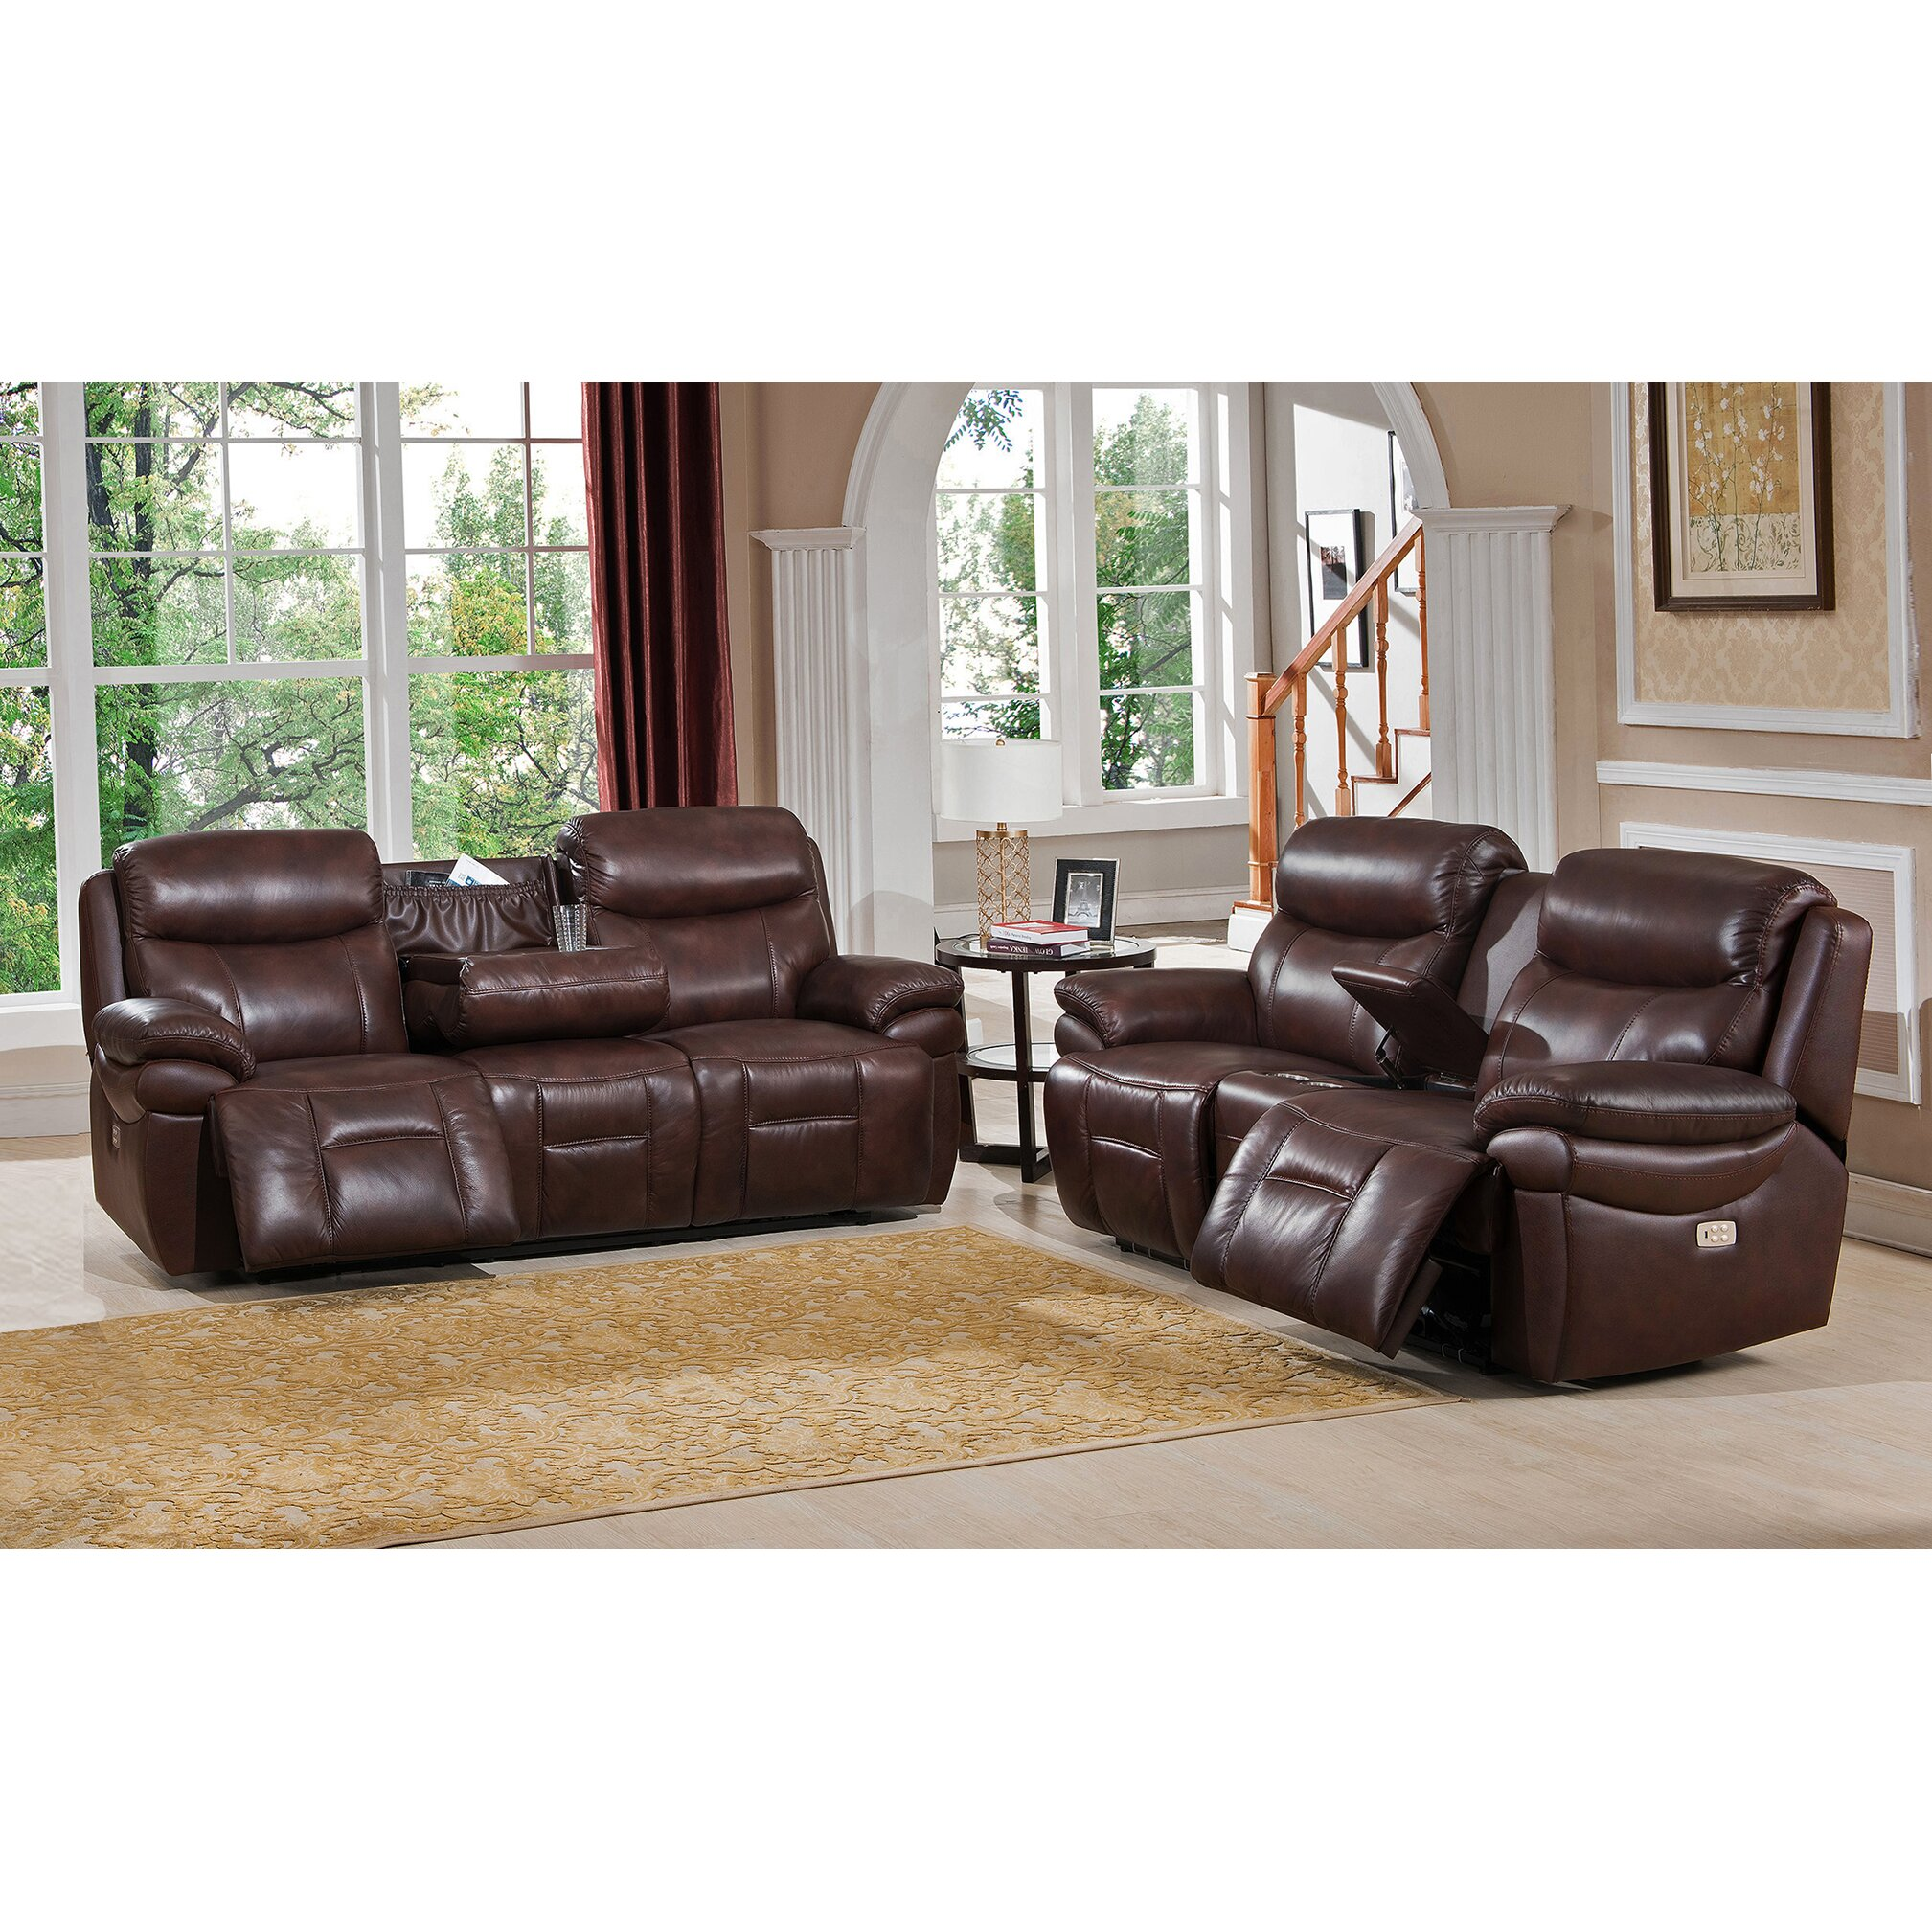 Amax Sanford 2 Piece Leather Power Reclining Living Room Set With Power Headrests And Drop Down